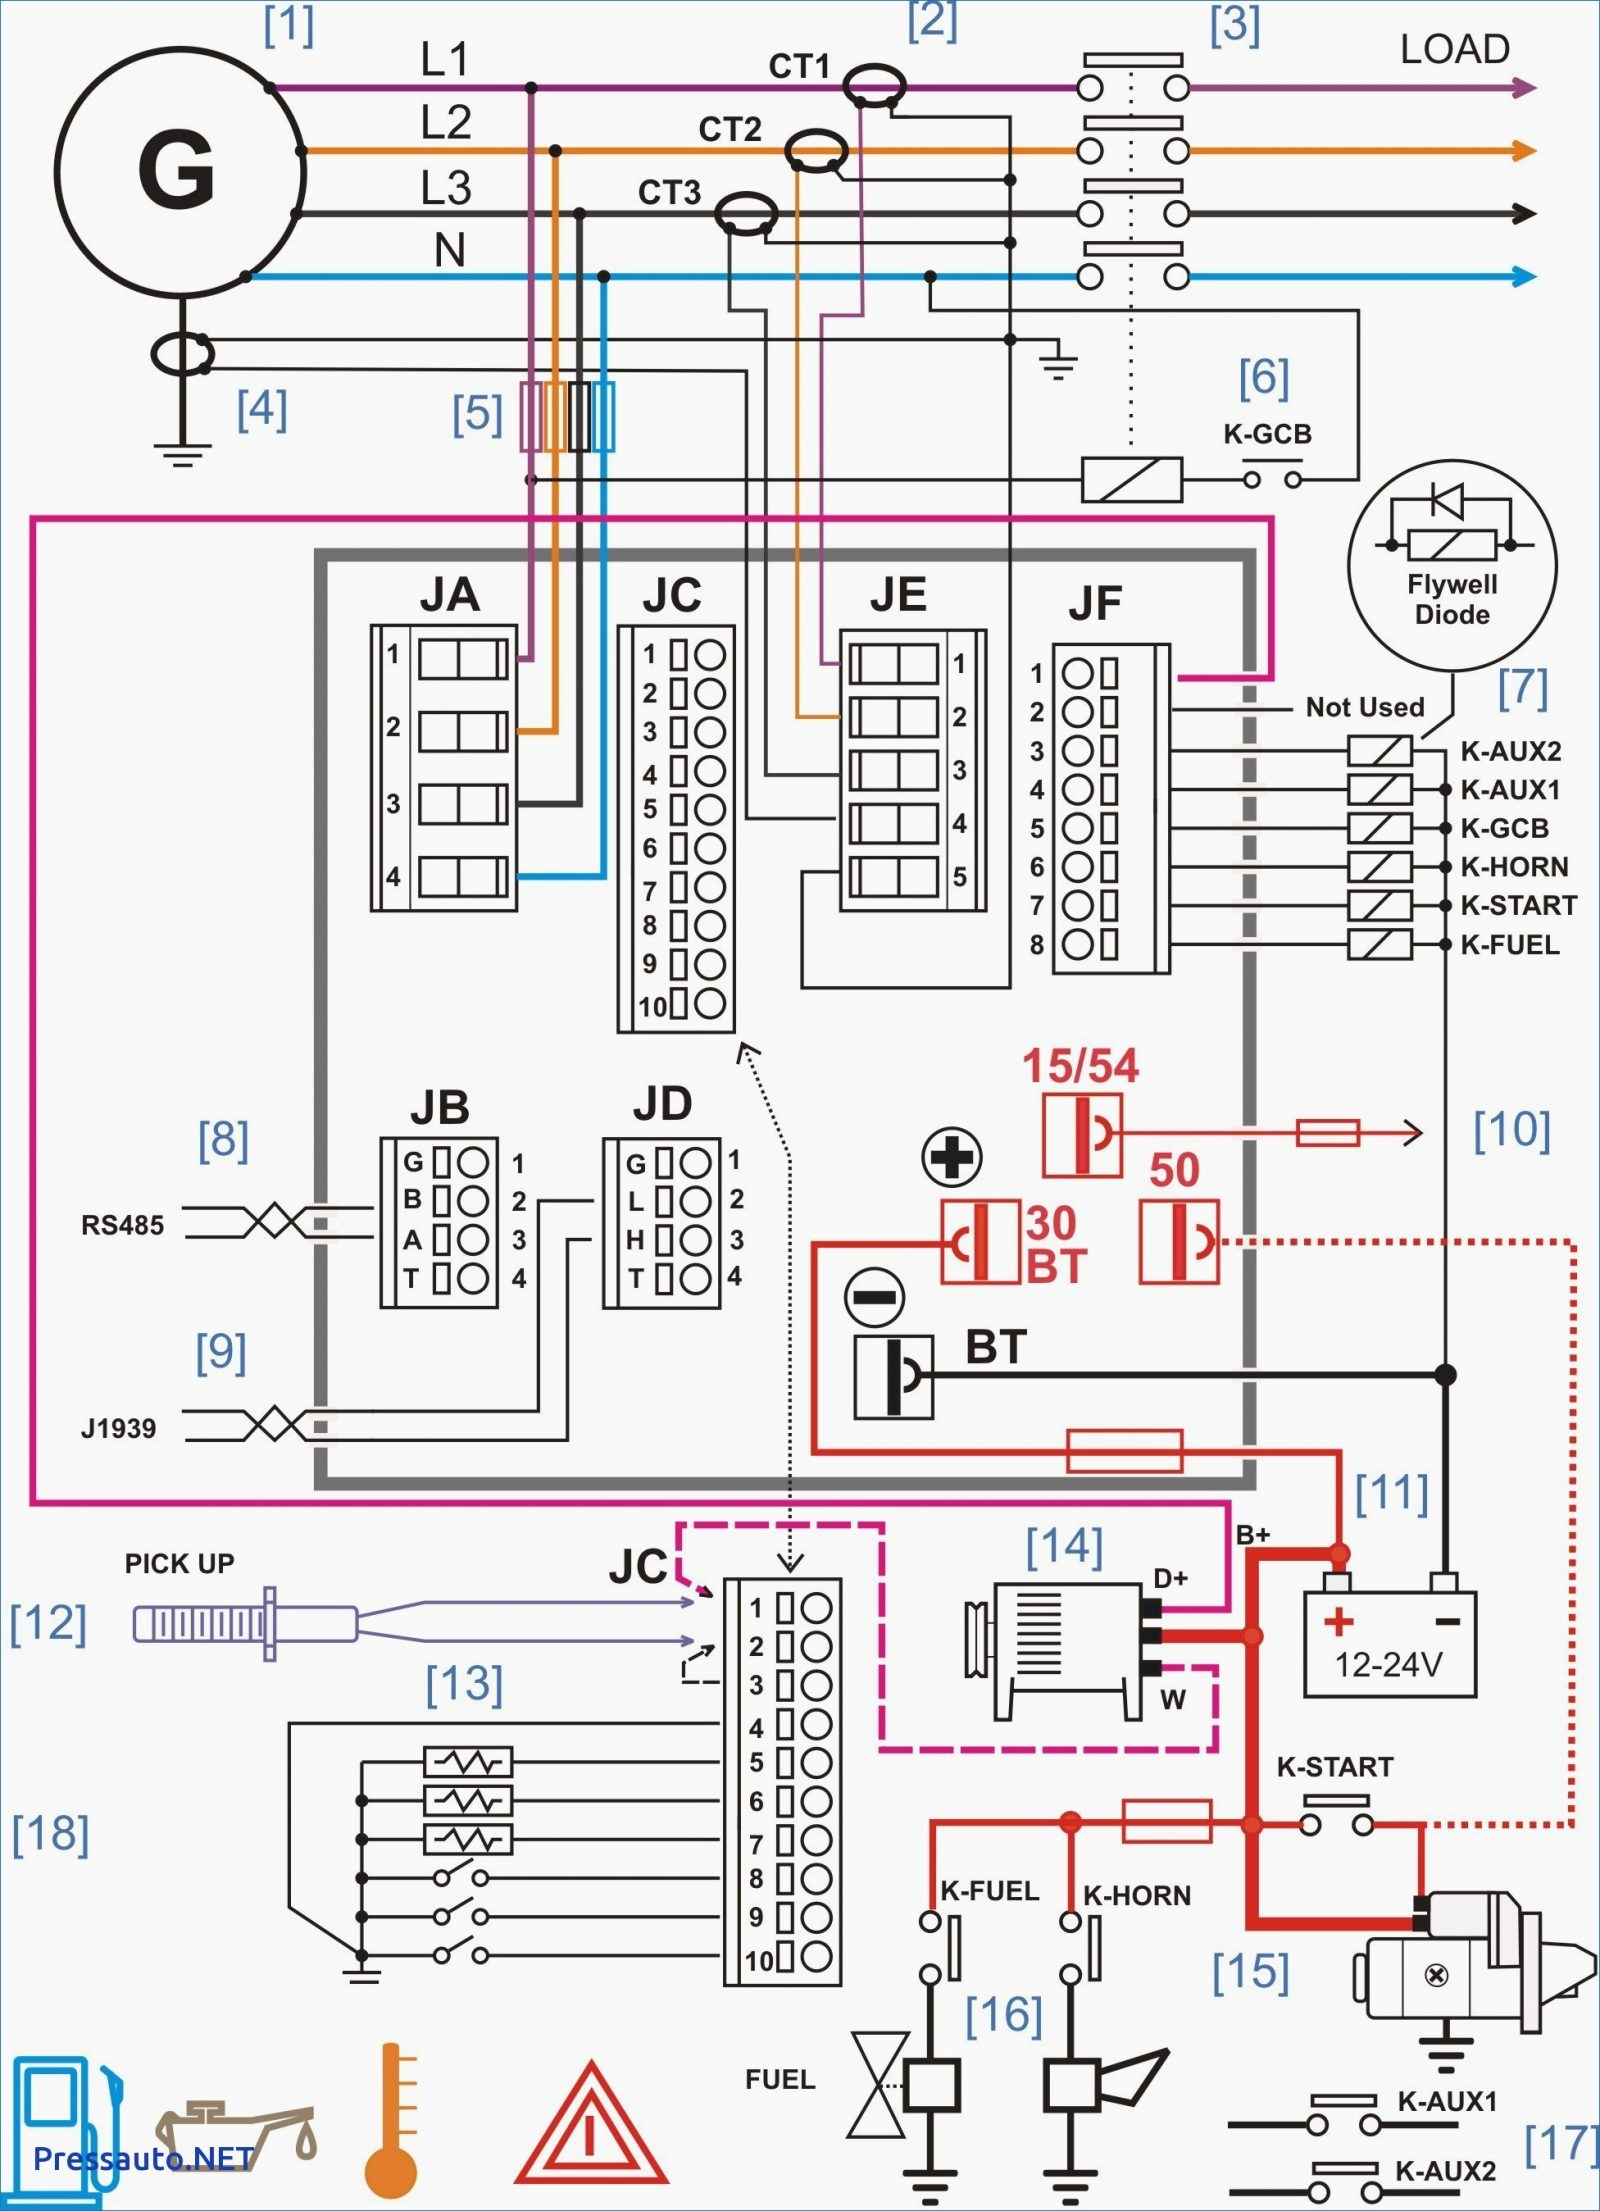 asco transfer switch wiring diagram Collection-Asco 7000 Series Automatic Transfer Switch Wiring Diagram New 10-s